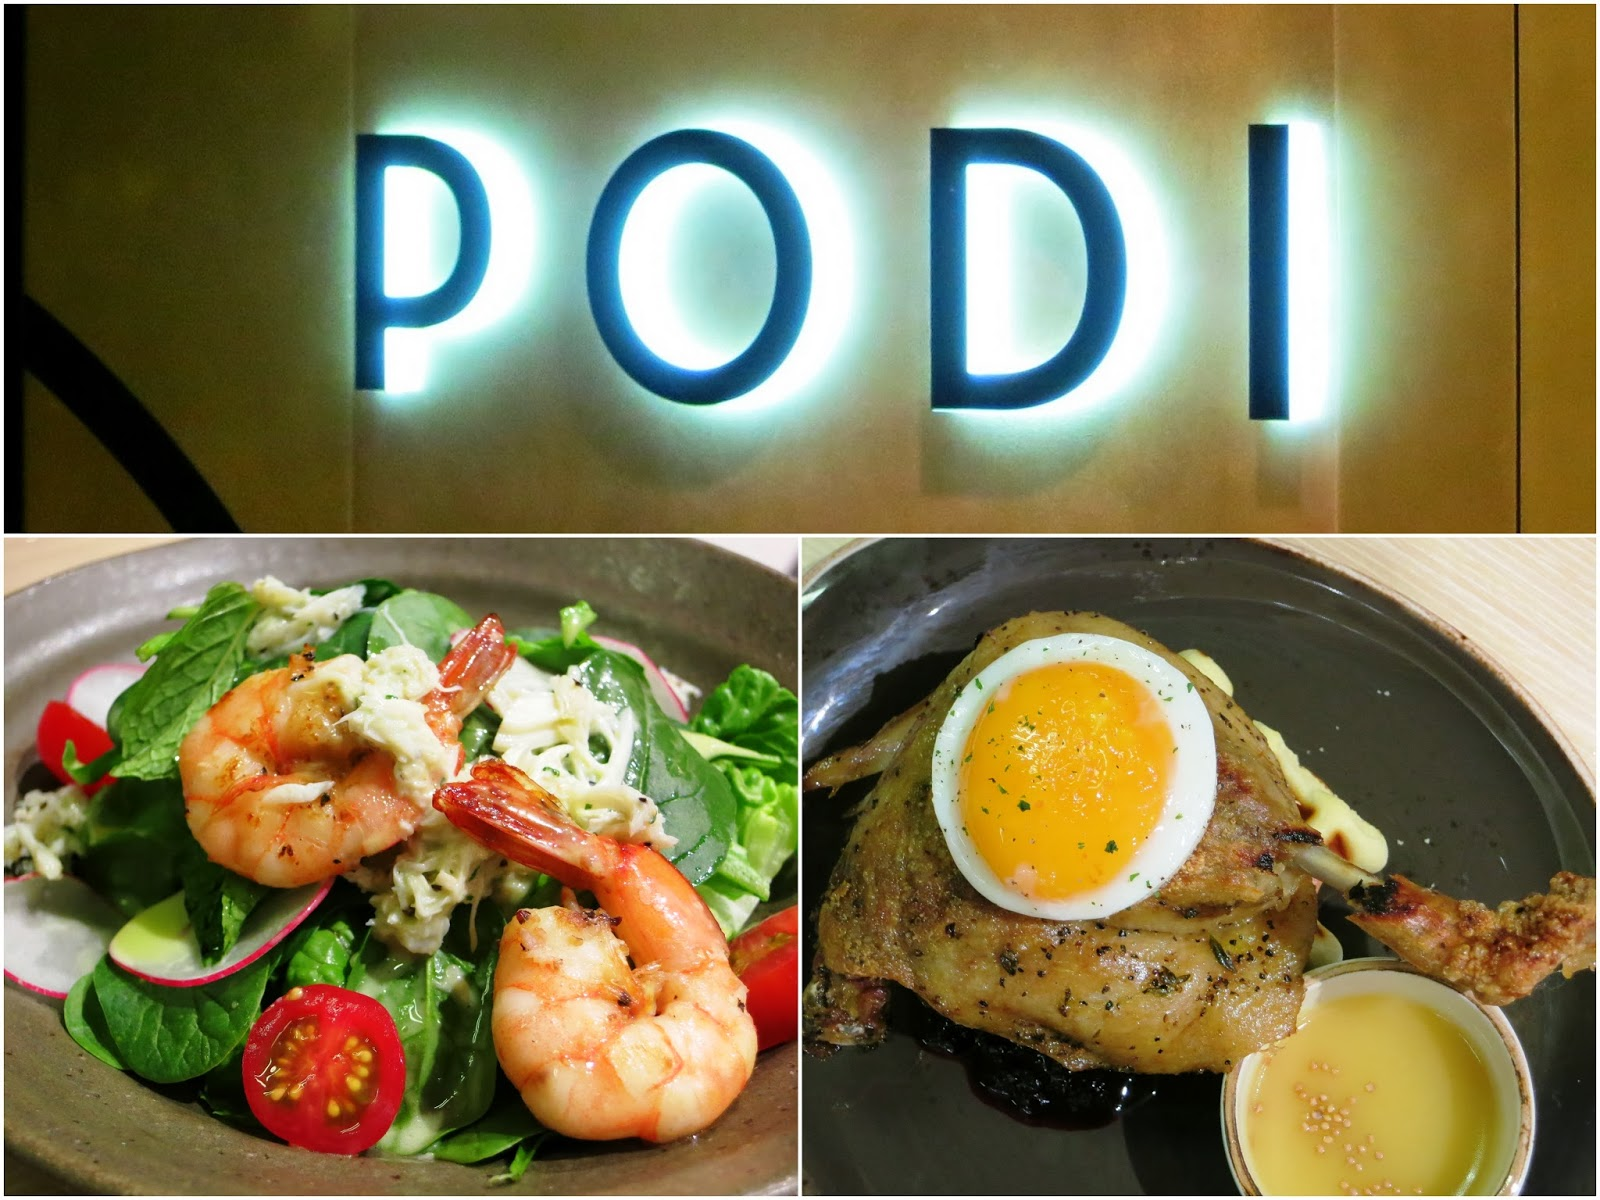 Podi A New All Day Breakfast Grill Restaurant At Raffles City Ping Centre